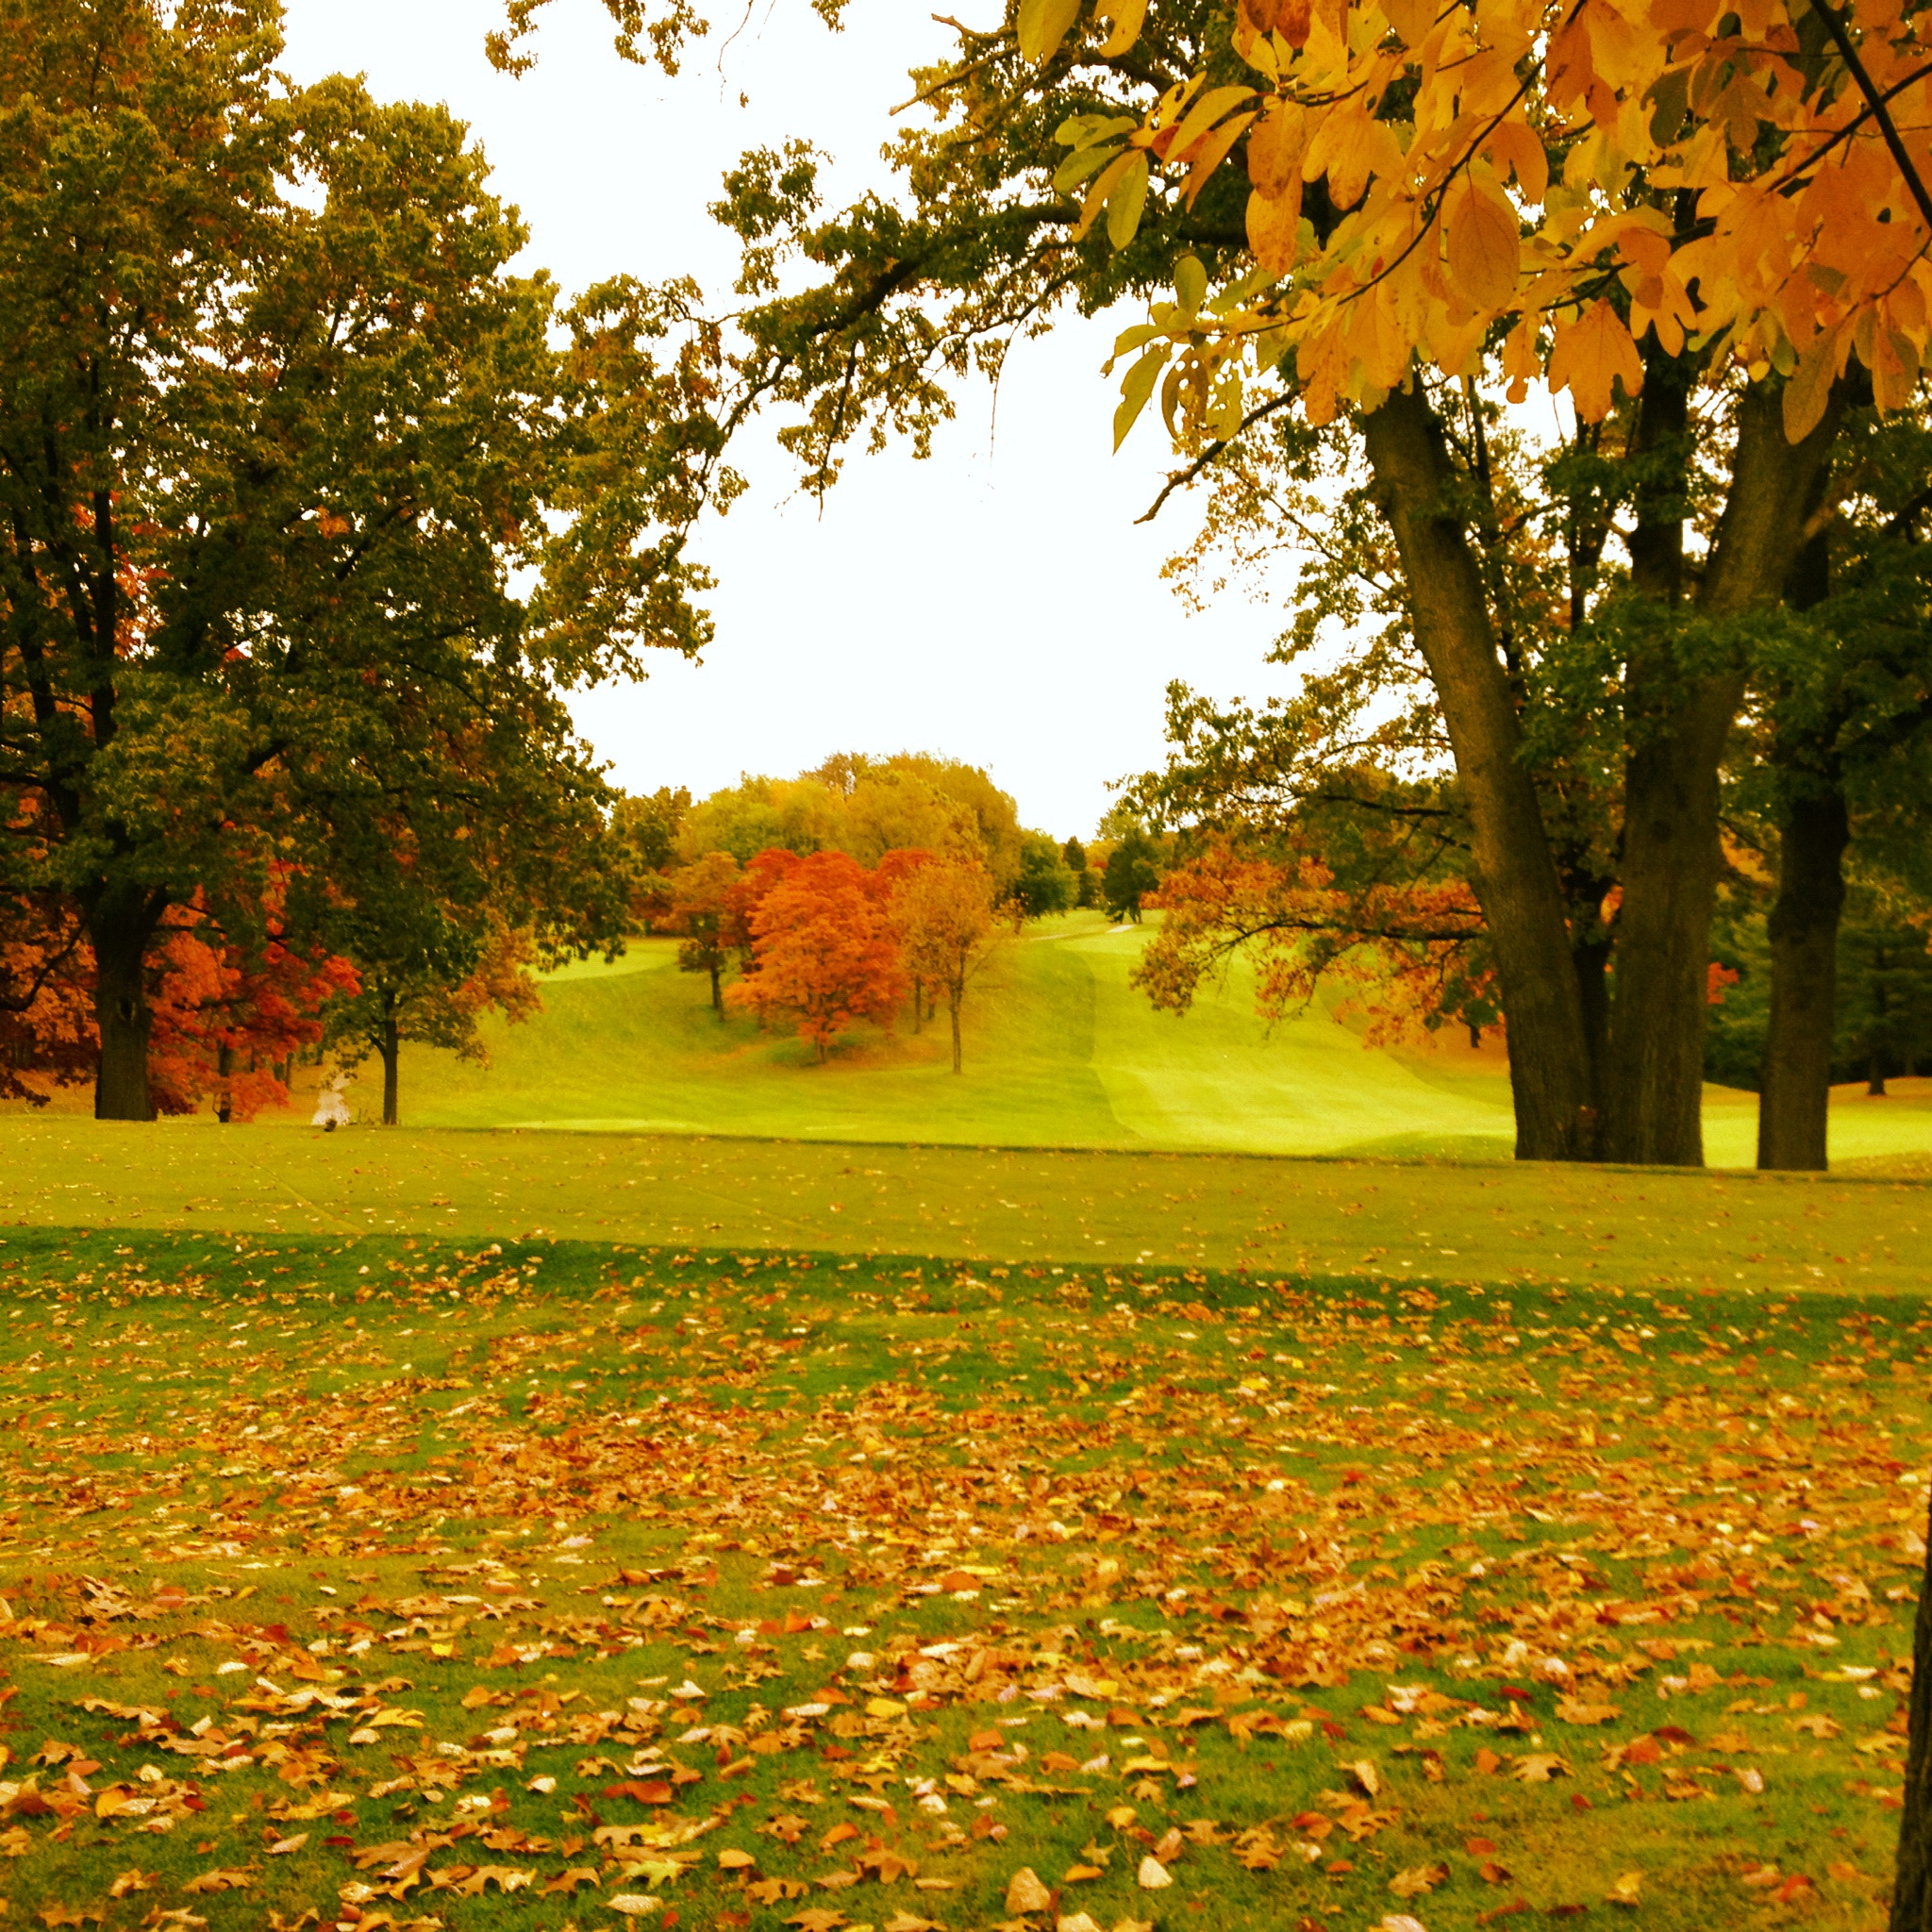 Golf-in-the-fall-wallpaper-wp425772